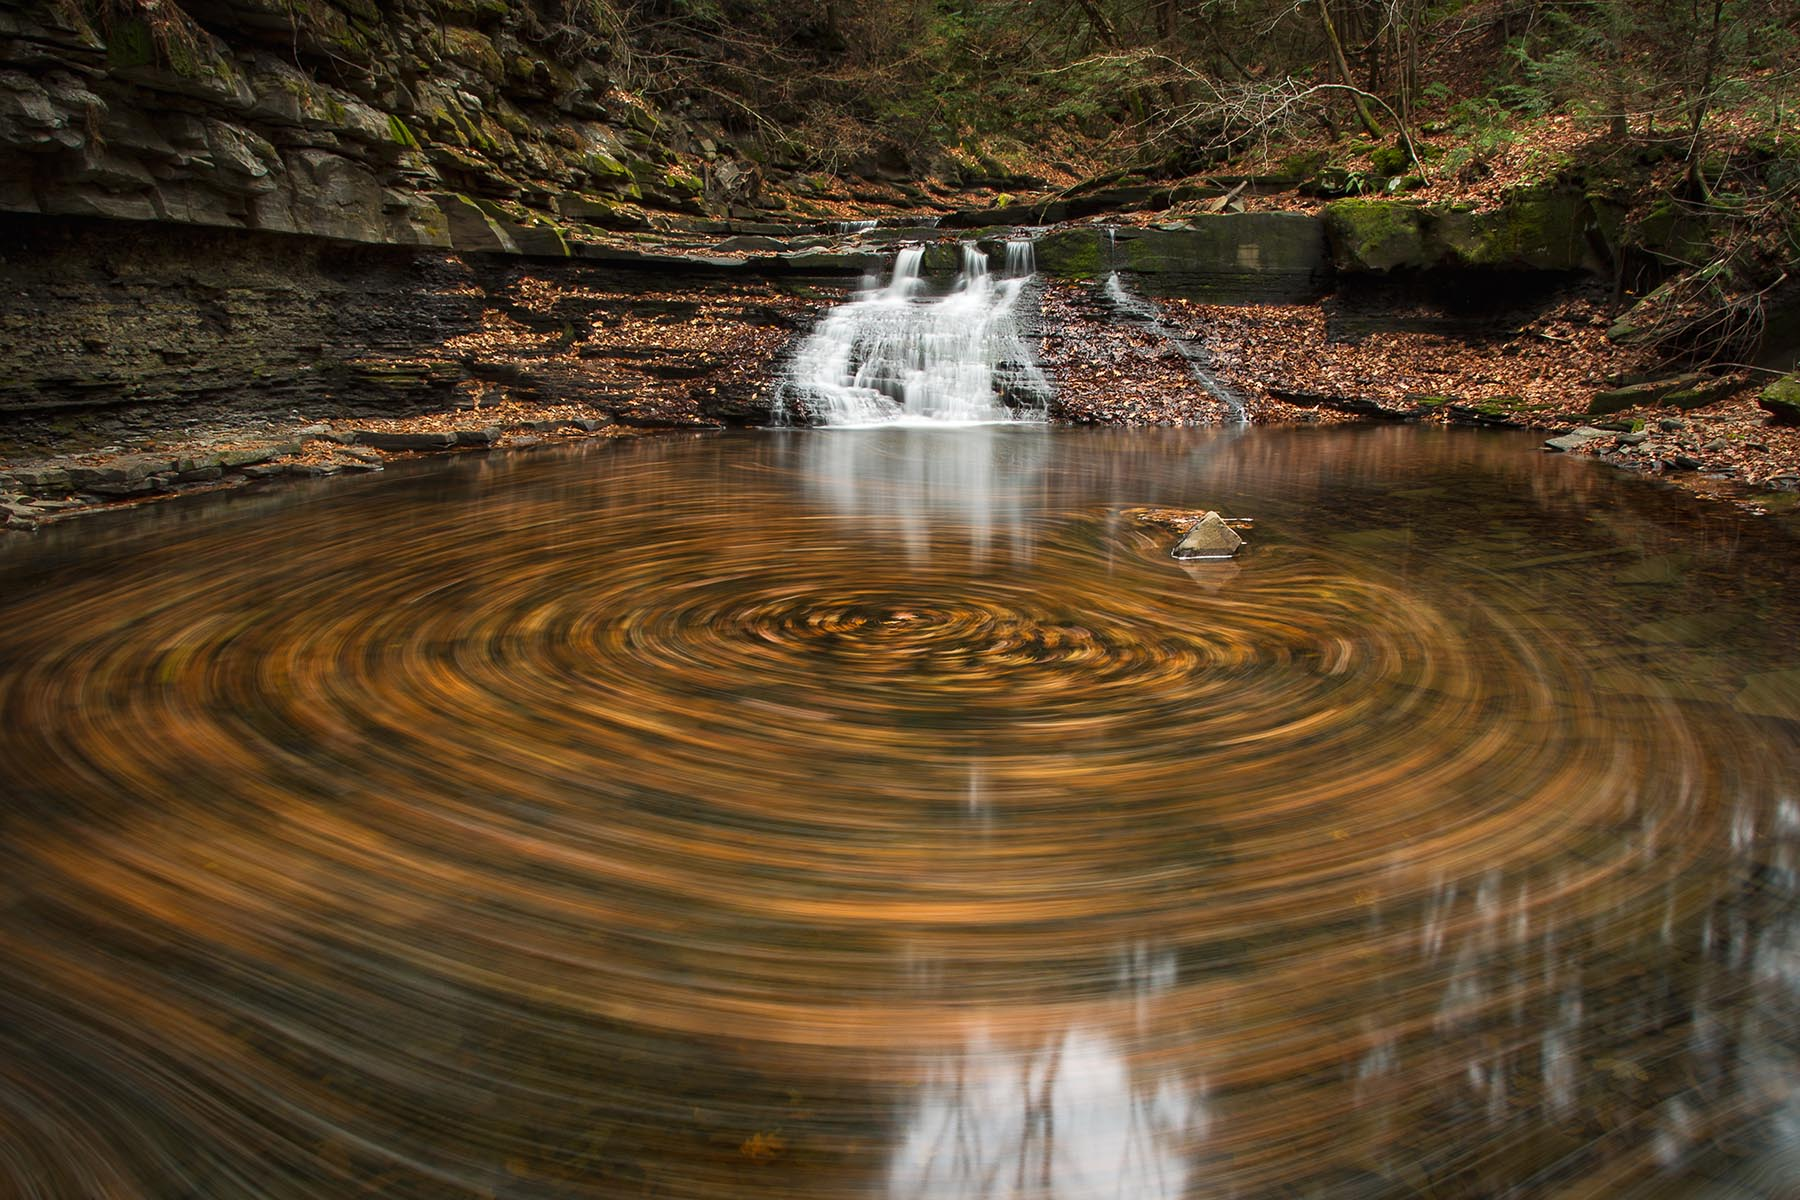 The Anthropocene, Altruism And A Waterfaller